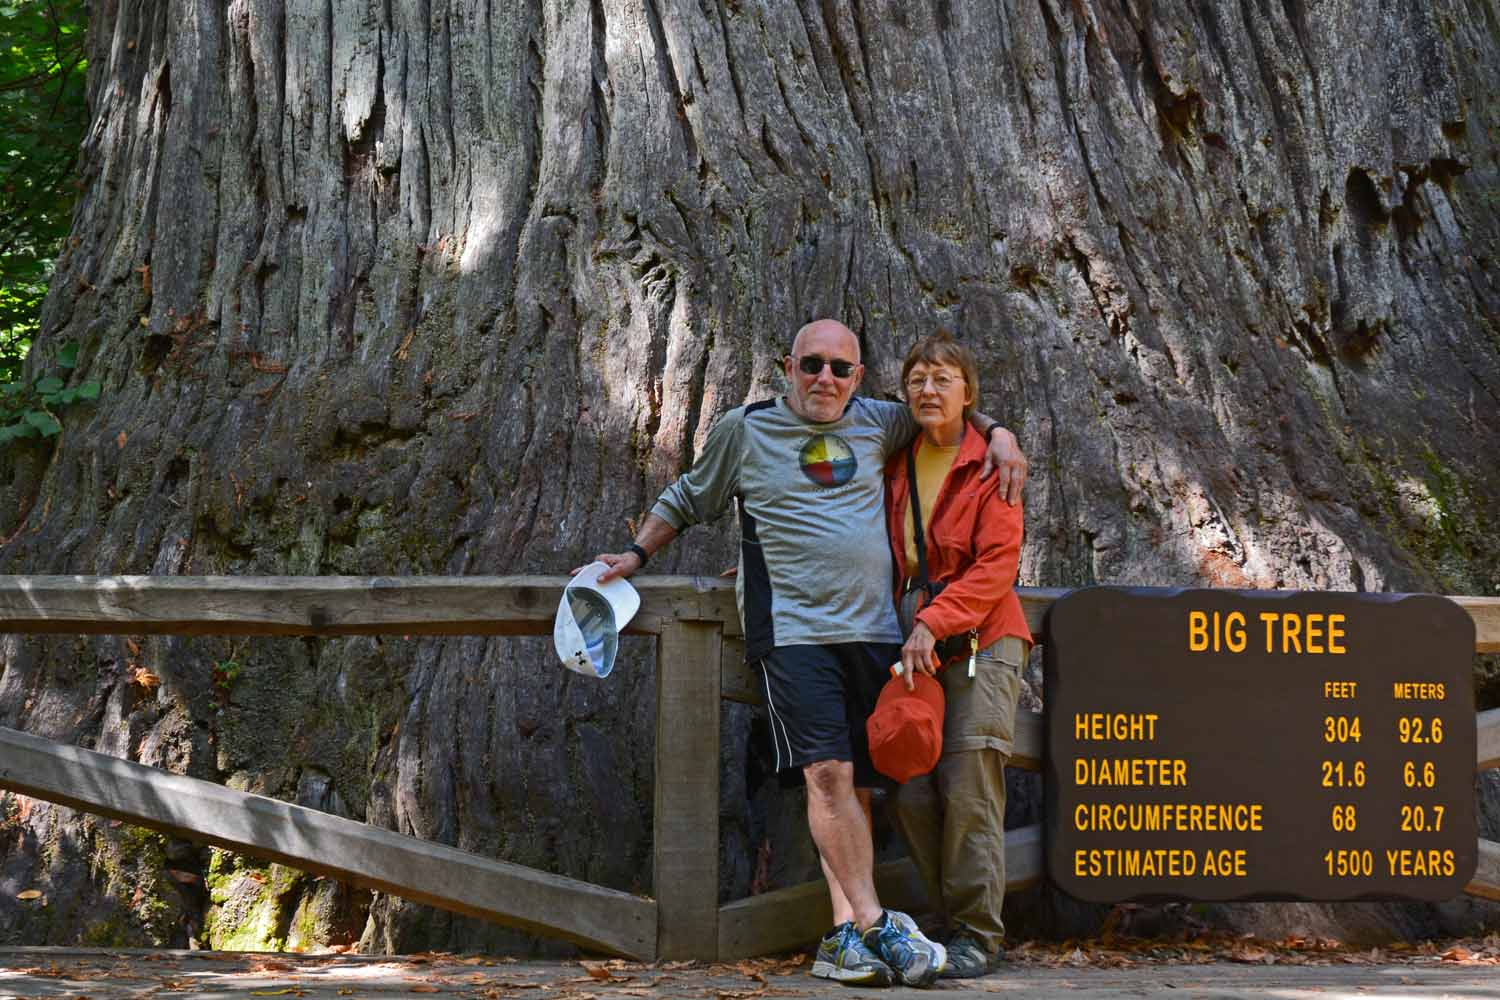 Great day in the Redwoods National Park...these huge trees are intimidating!